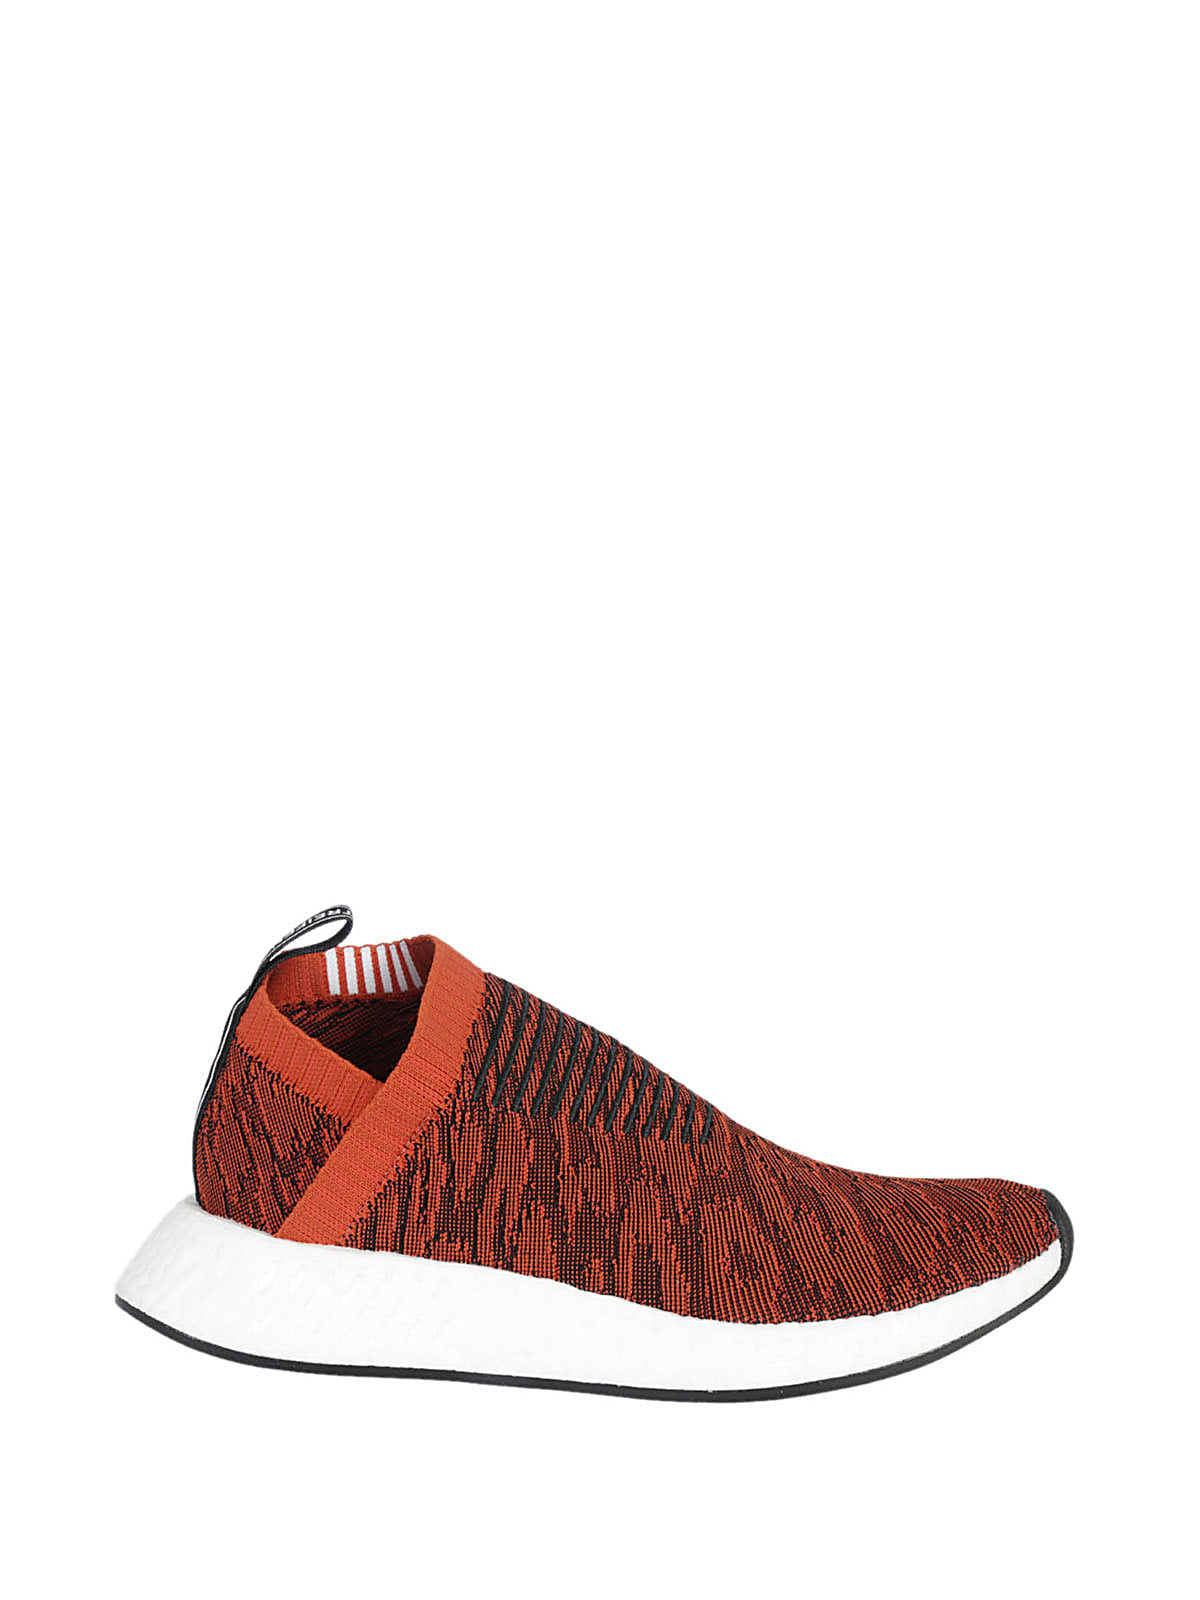 ece37df08a4d ADIDAS ORIGINALS Nmd Cs2 Primeknit Sneakers